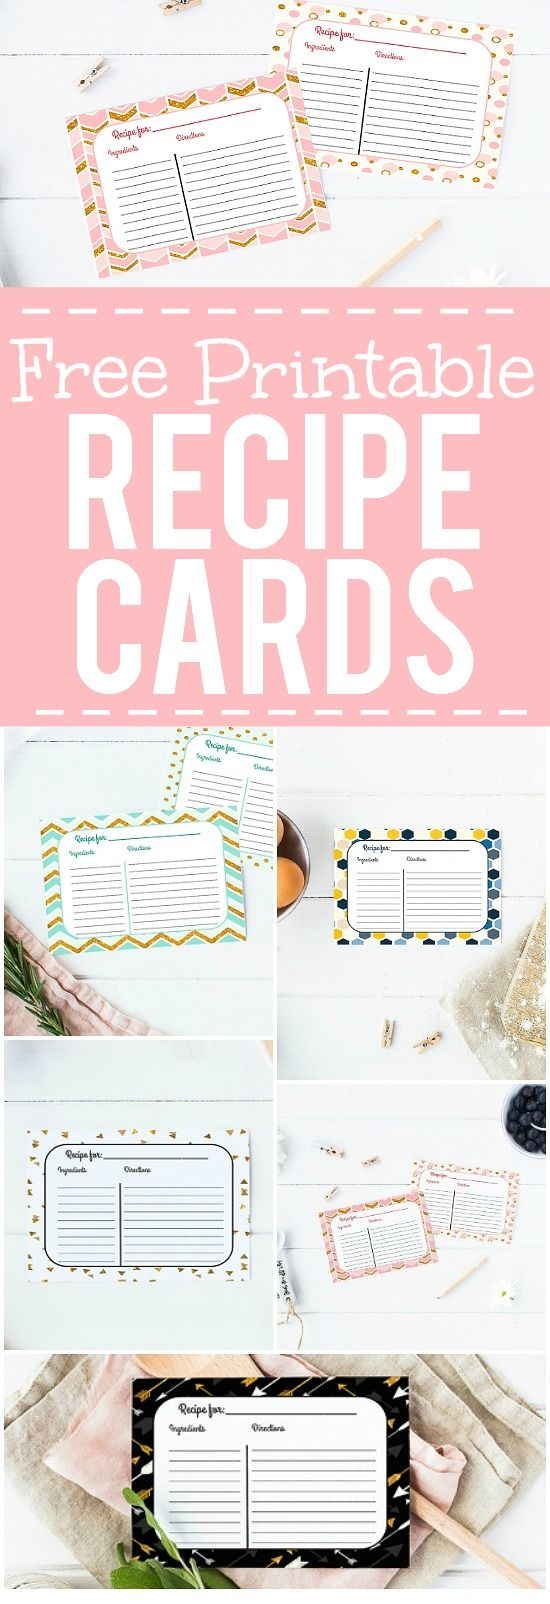 523 best printable recipe cards images on pinterest printable free printable recipe cards keep all of your favorite recipes safe and forumfinder Images